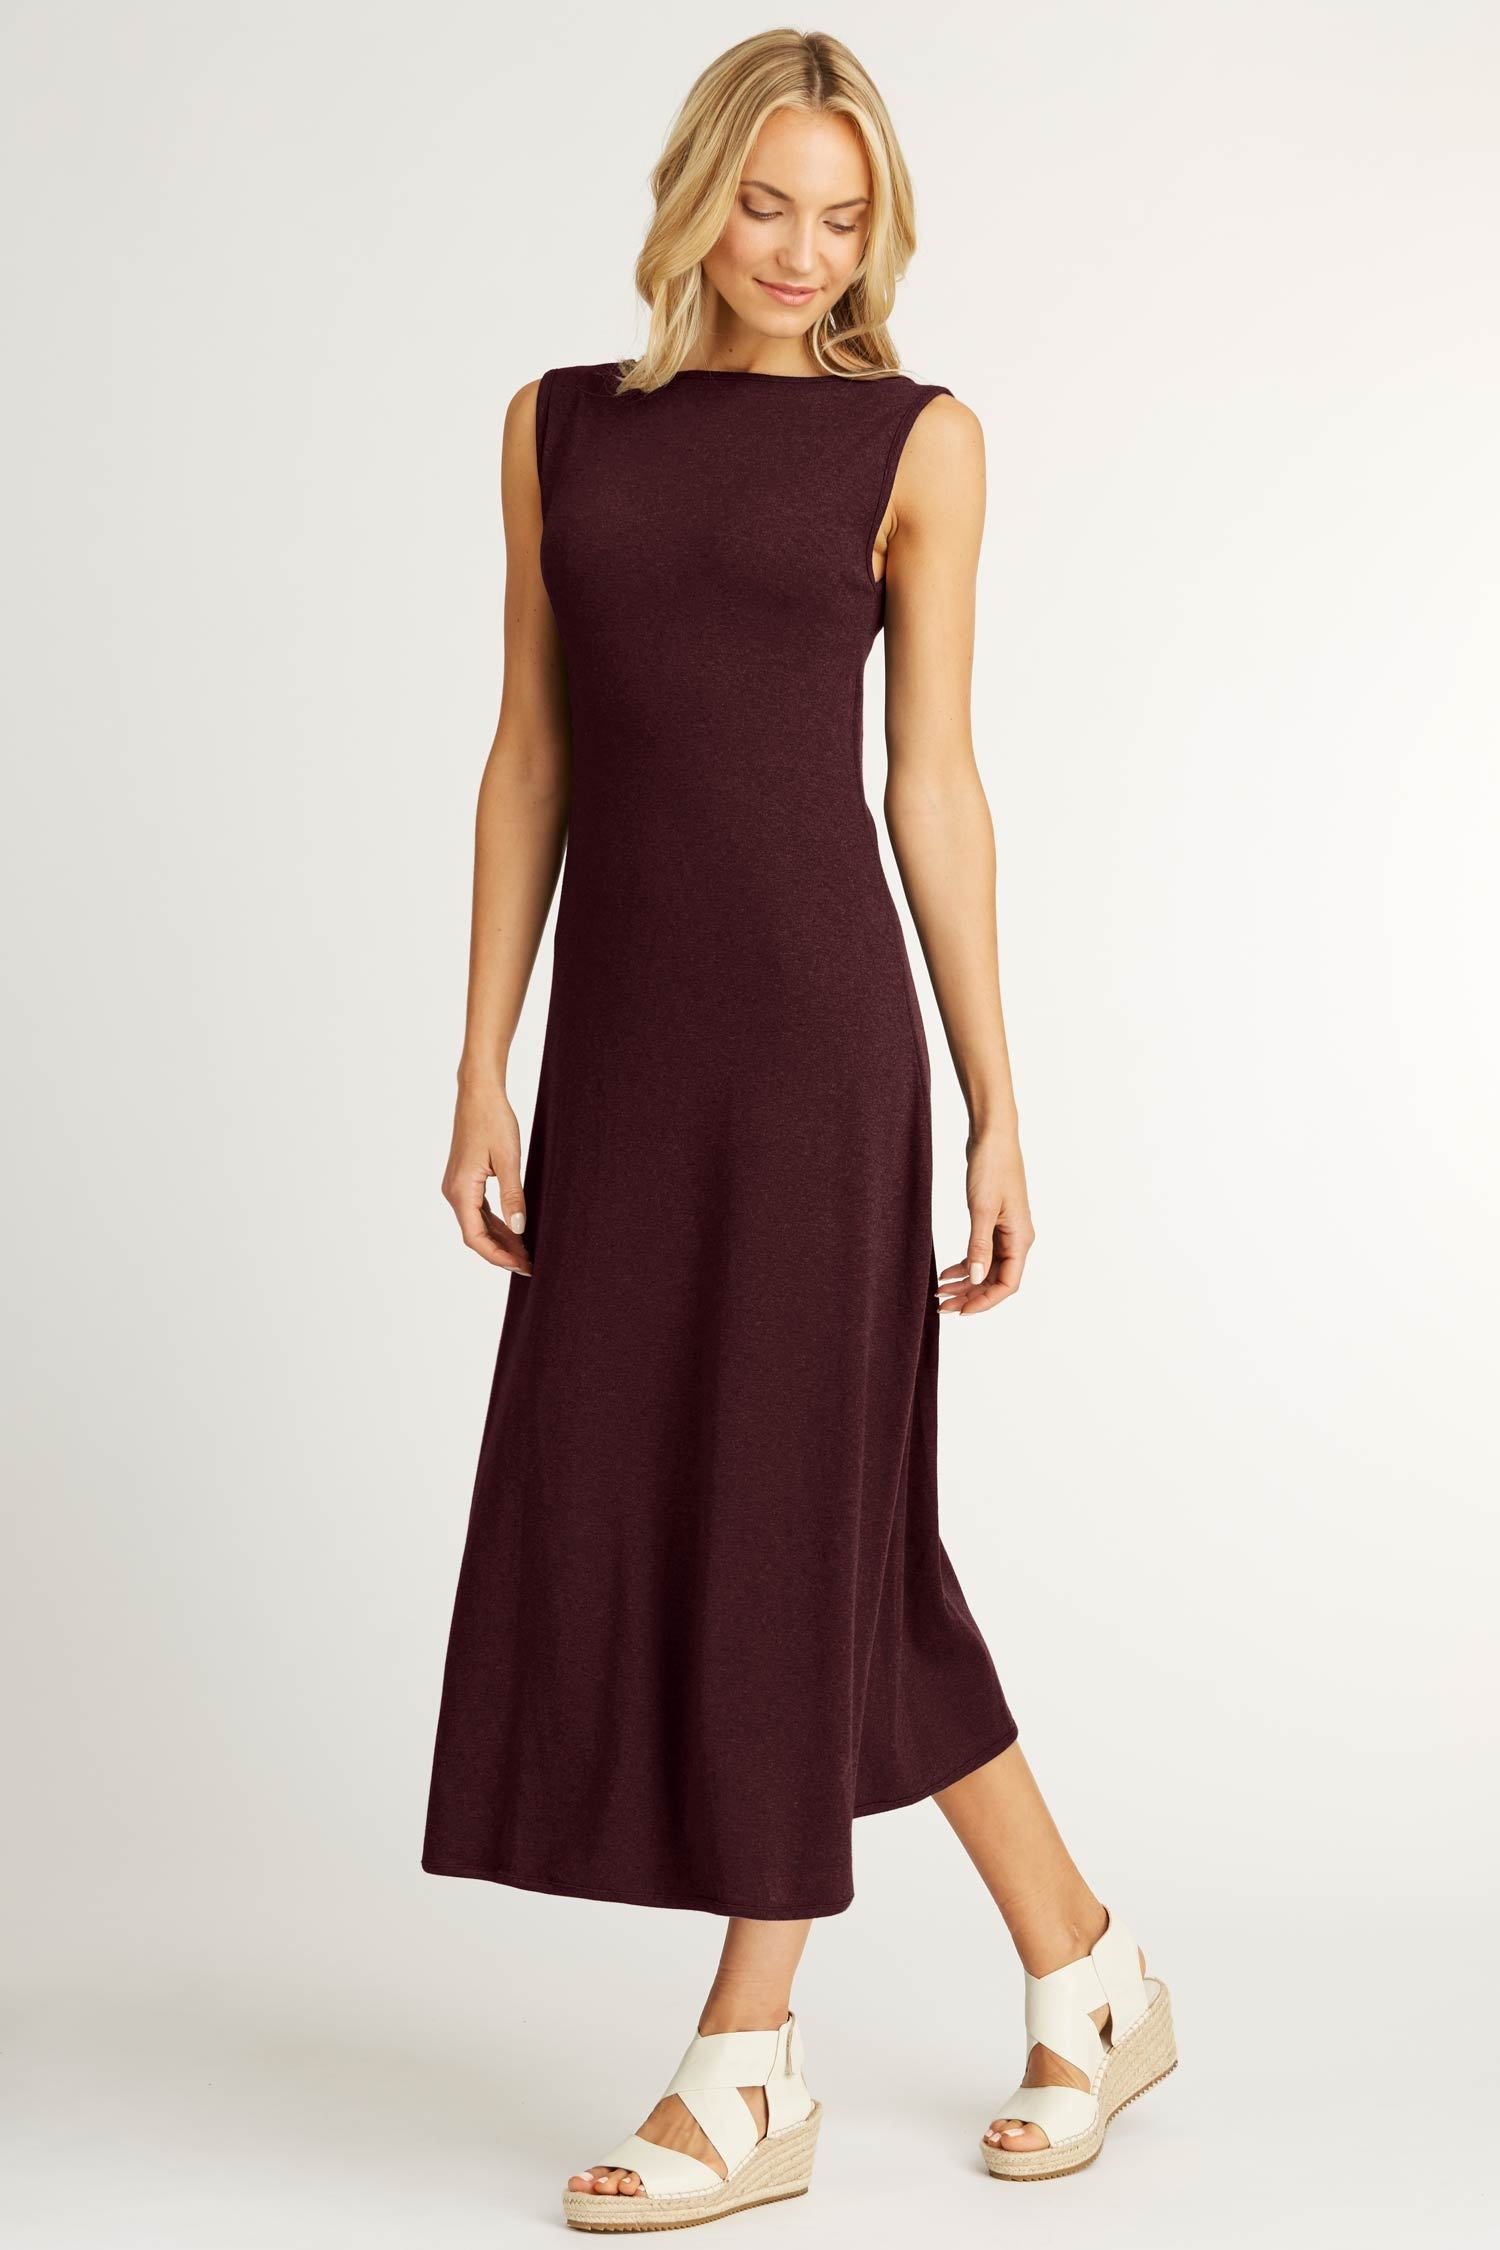 Womens Boatneck Maxi Dress in Burgundy Red | Organic Cotton Clothing